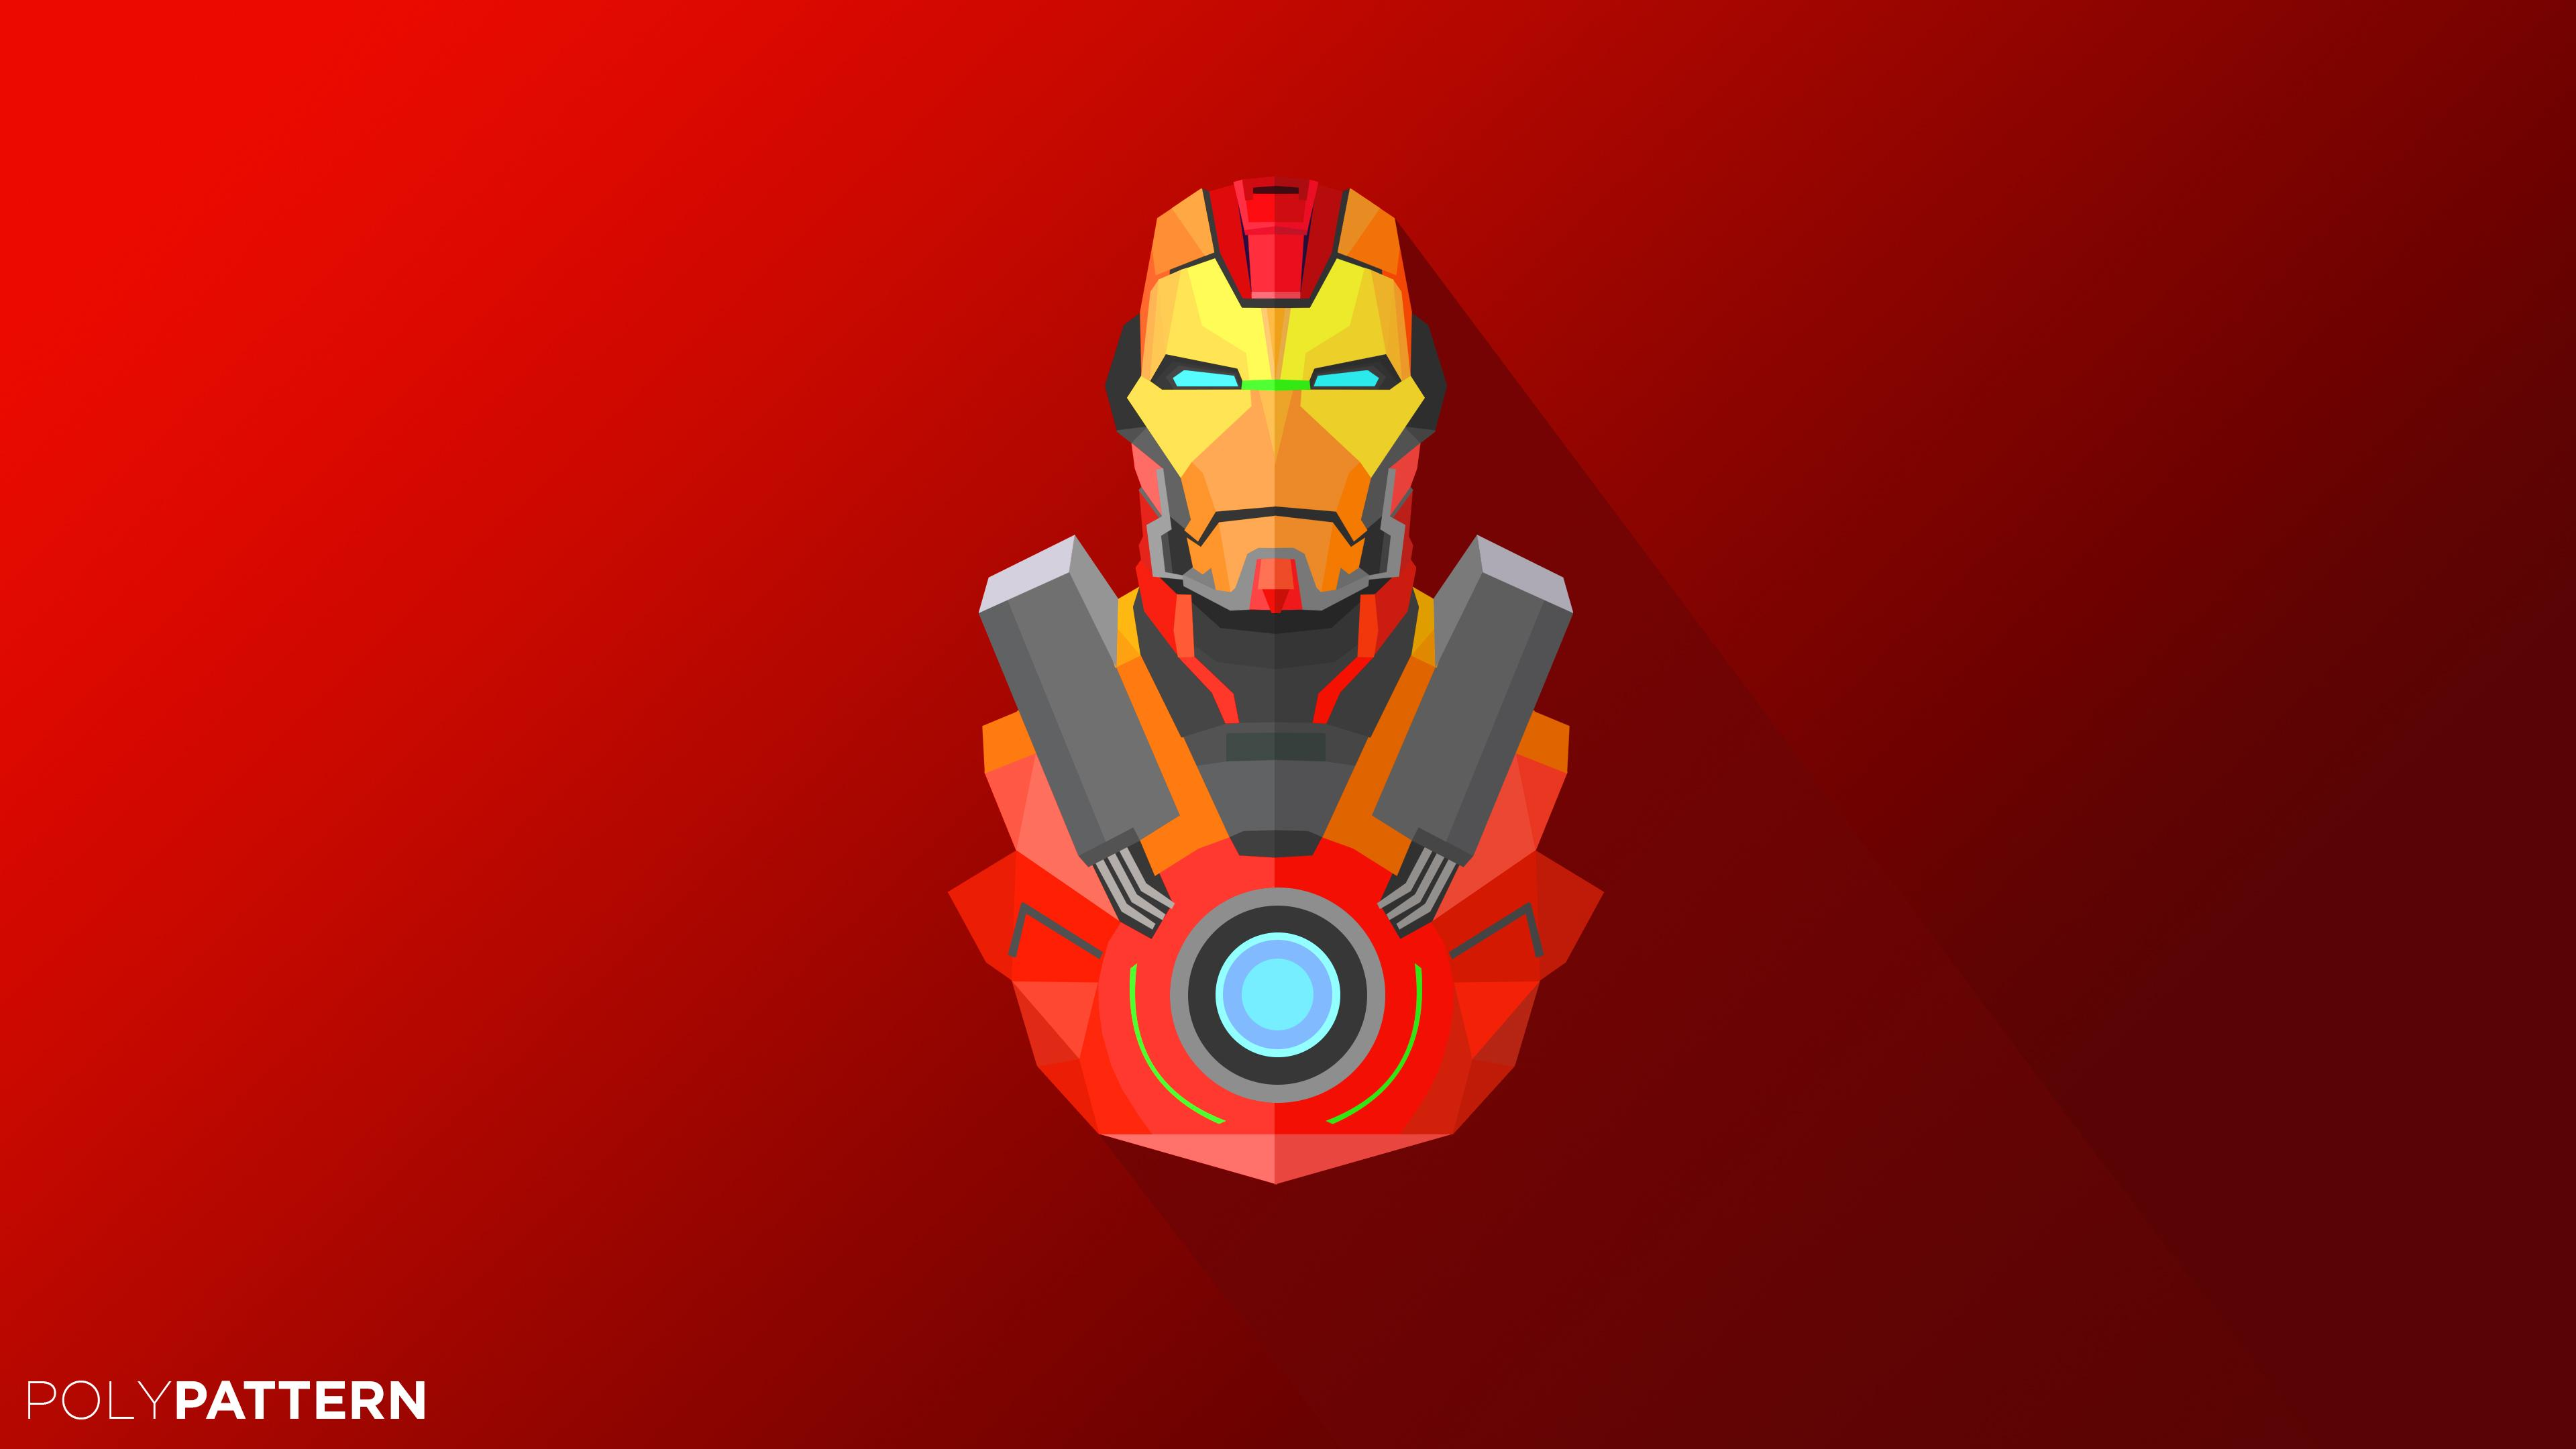 Iron Man Artwork 4k Wallpapers: Iron Man Heartbreaker Artwork 4k, HD Superheroes, 4k